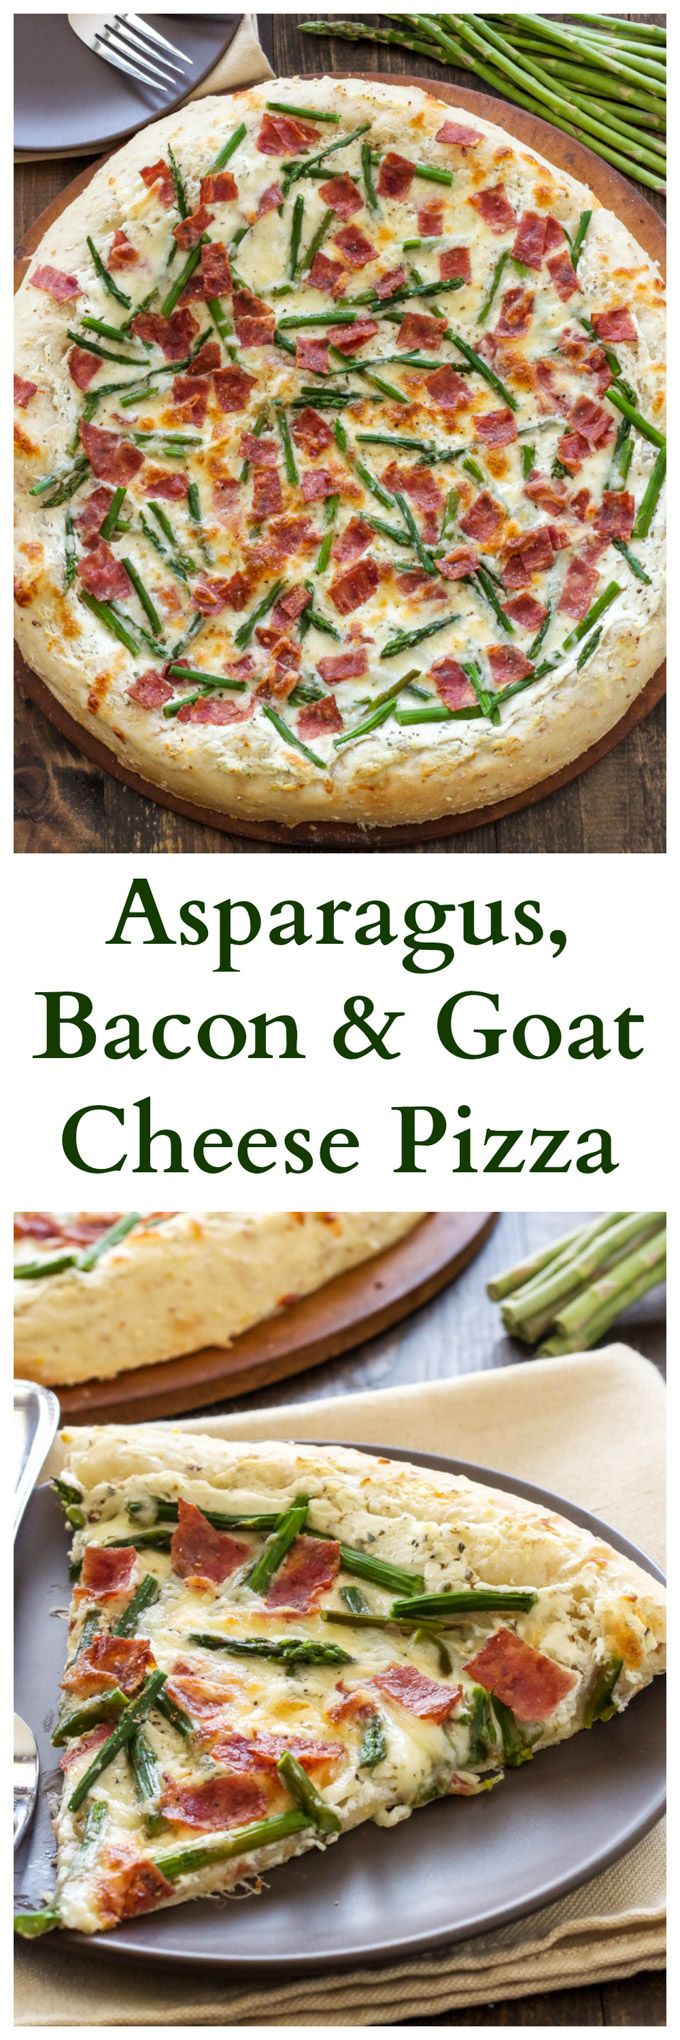 Asparagus, Bacon, and Goat Cheese Pizza | Asparagus, bacon, and goat ...